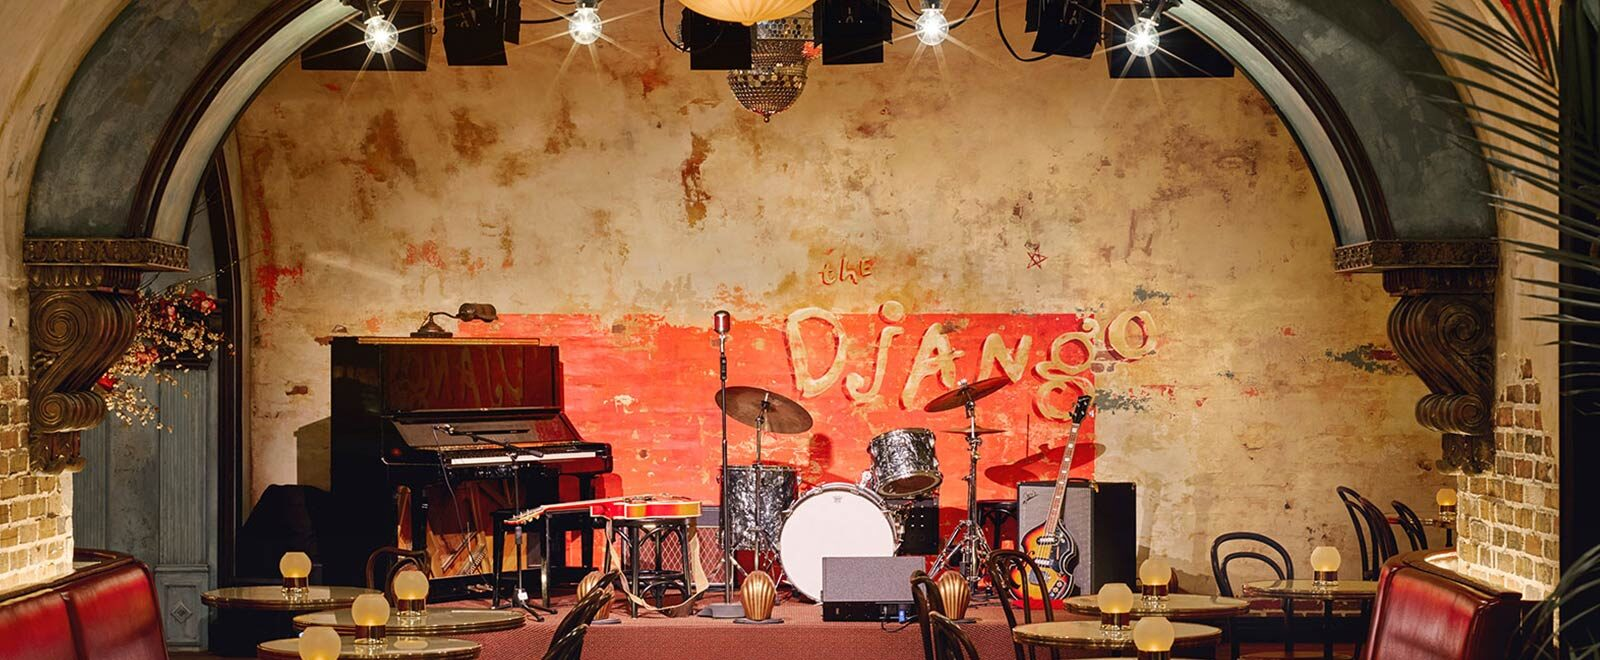 The Beat Goes On at The Django - Reopening April 1st